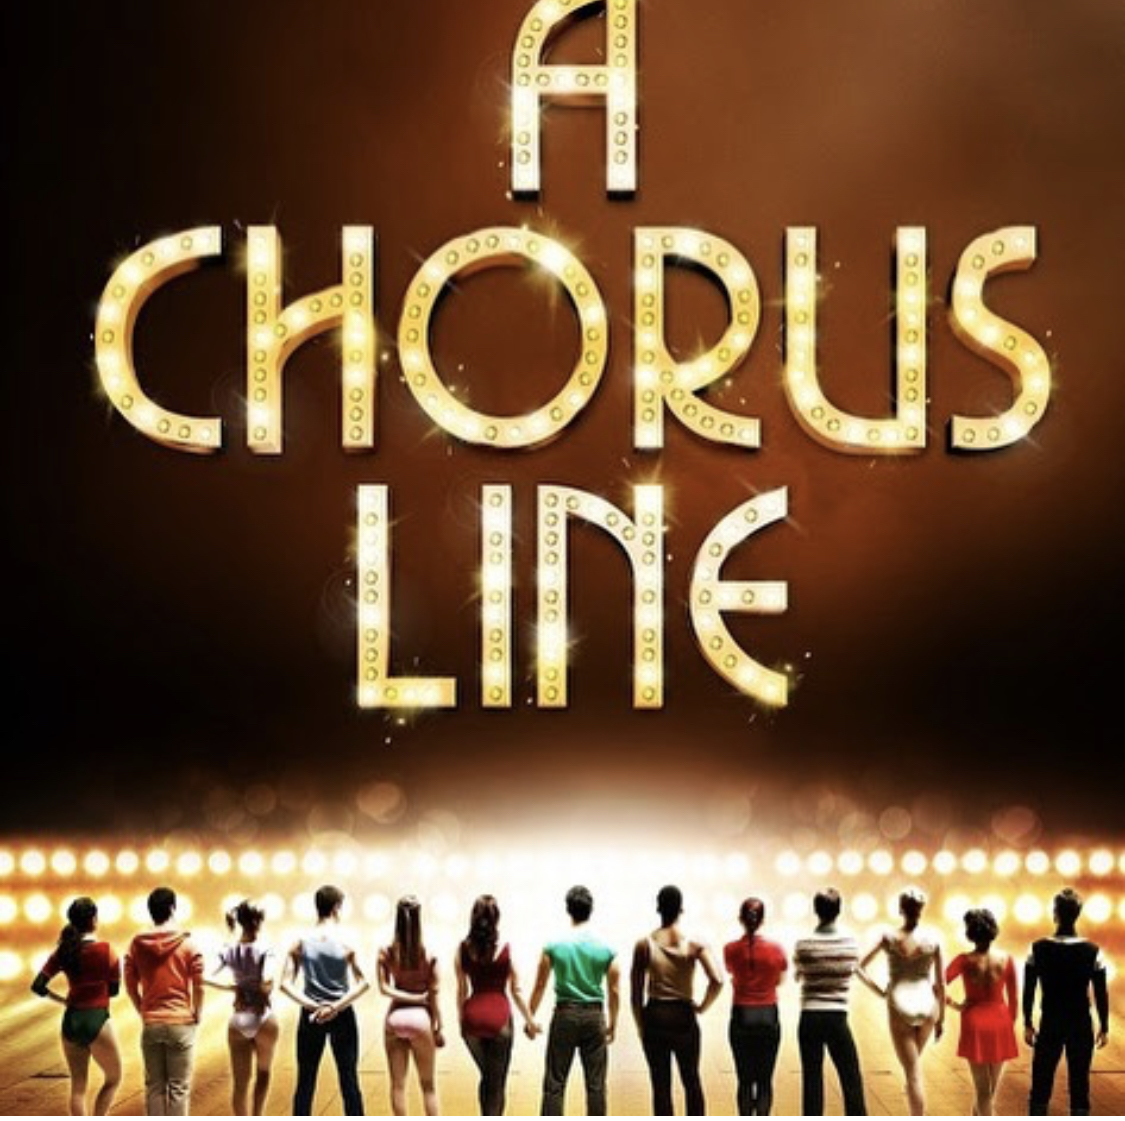 """Recently announced, the drama club plans to perform the musical """"A Chorus Line"""" in the spring. """"It's very popular and has tons of awards; it also has good characterization,"""" senior Dona Jazrawy said."""